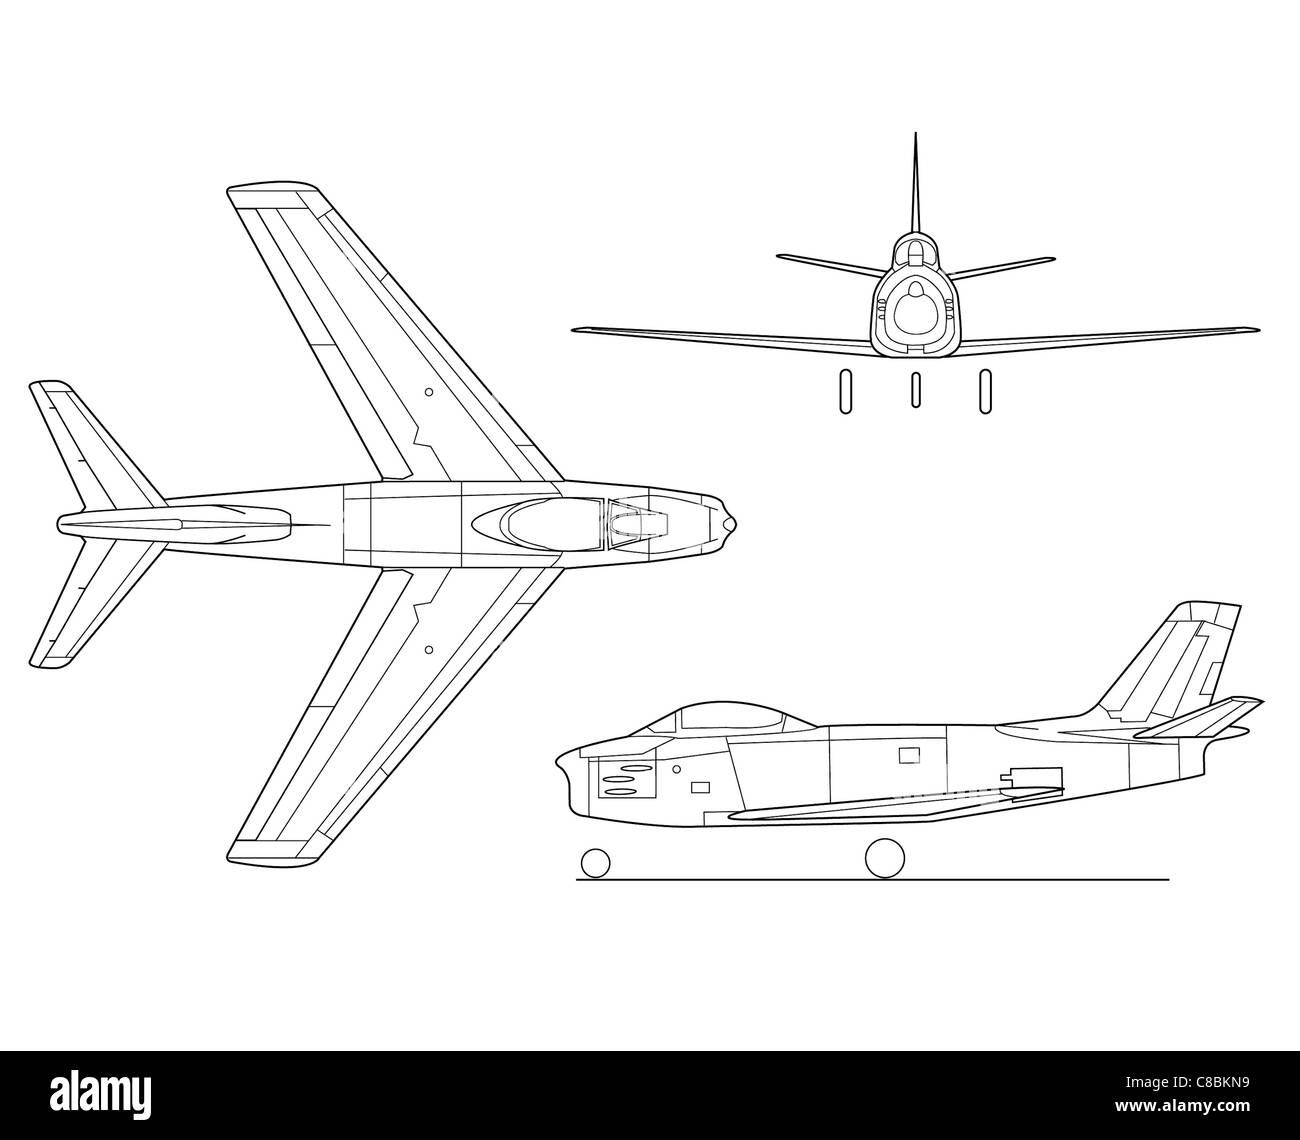 Line Drawing North America : View aircraft line art drawing north american f sabre